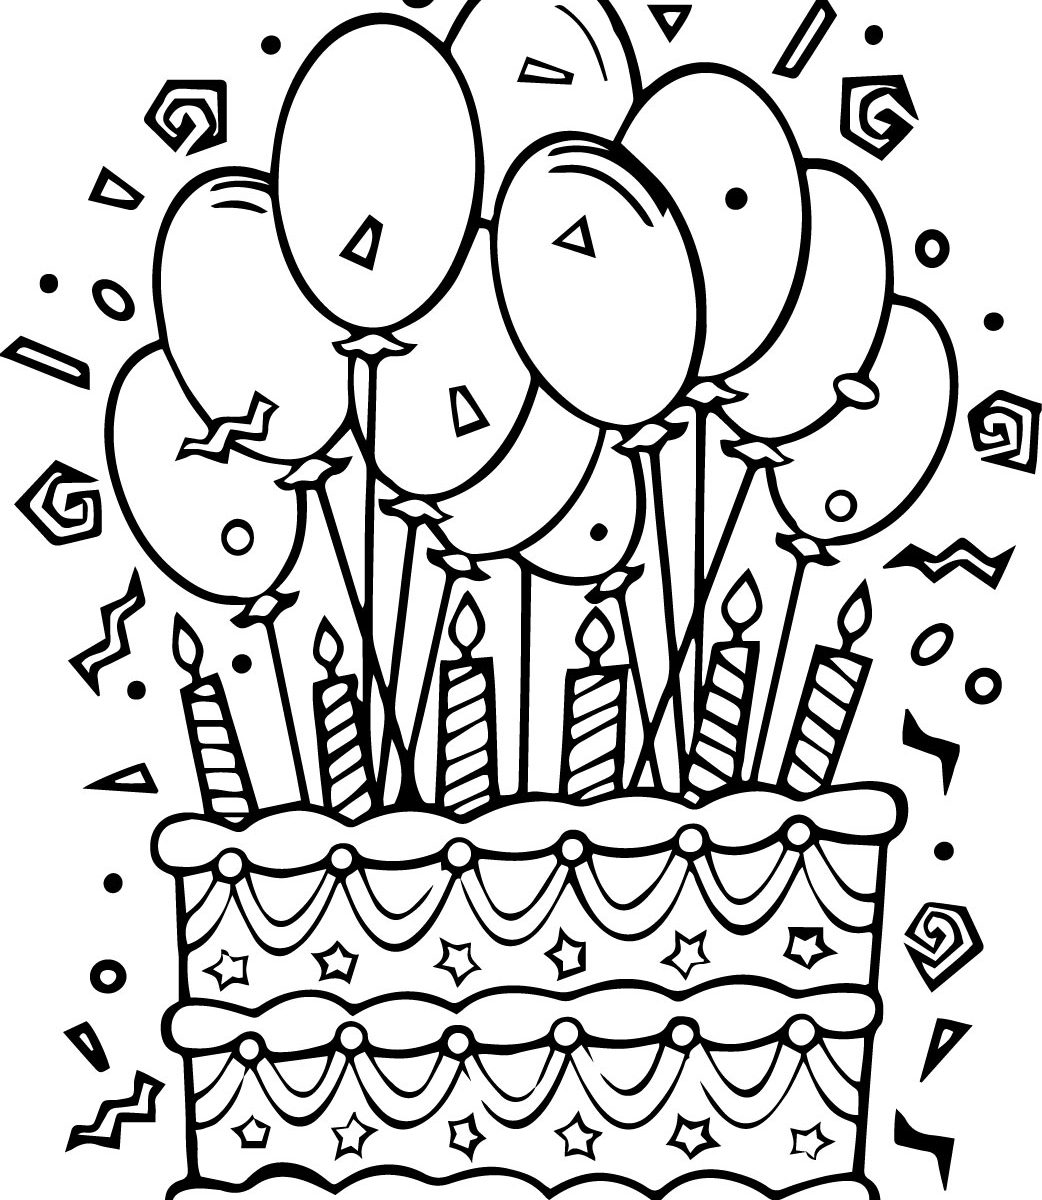 birthday cake coloring page free printable ; birthday-cake-coloring-pages-1042x1200